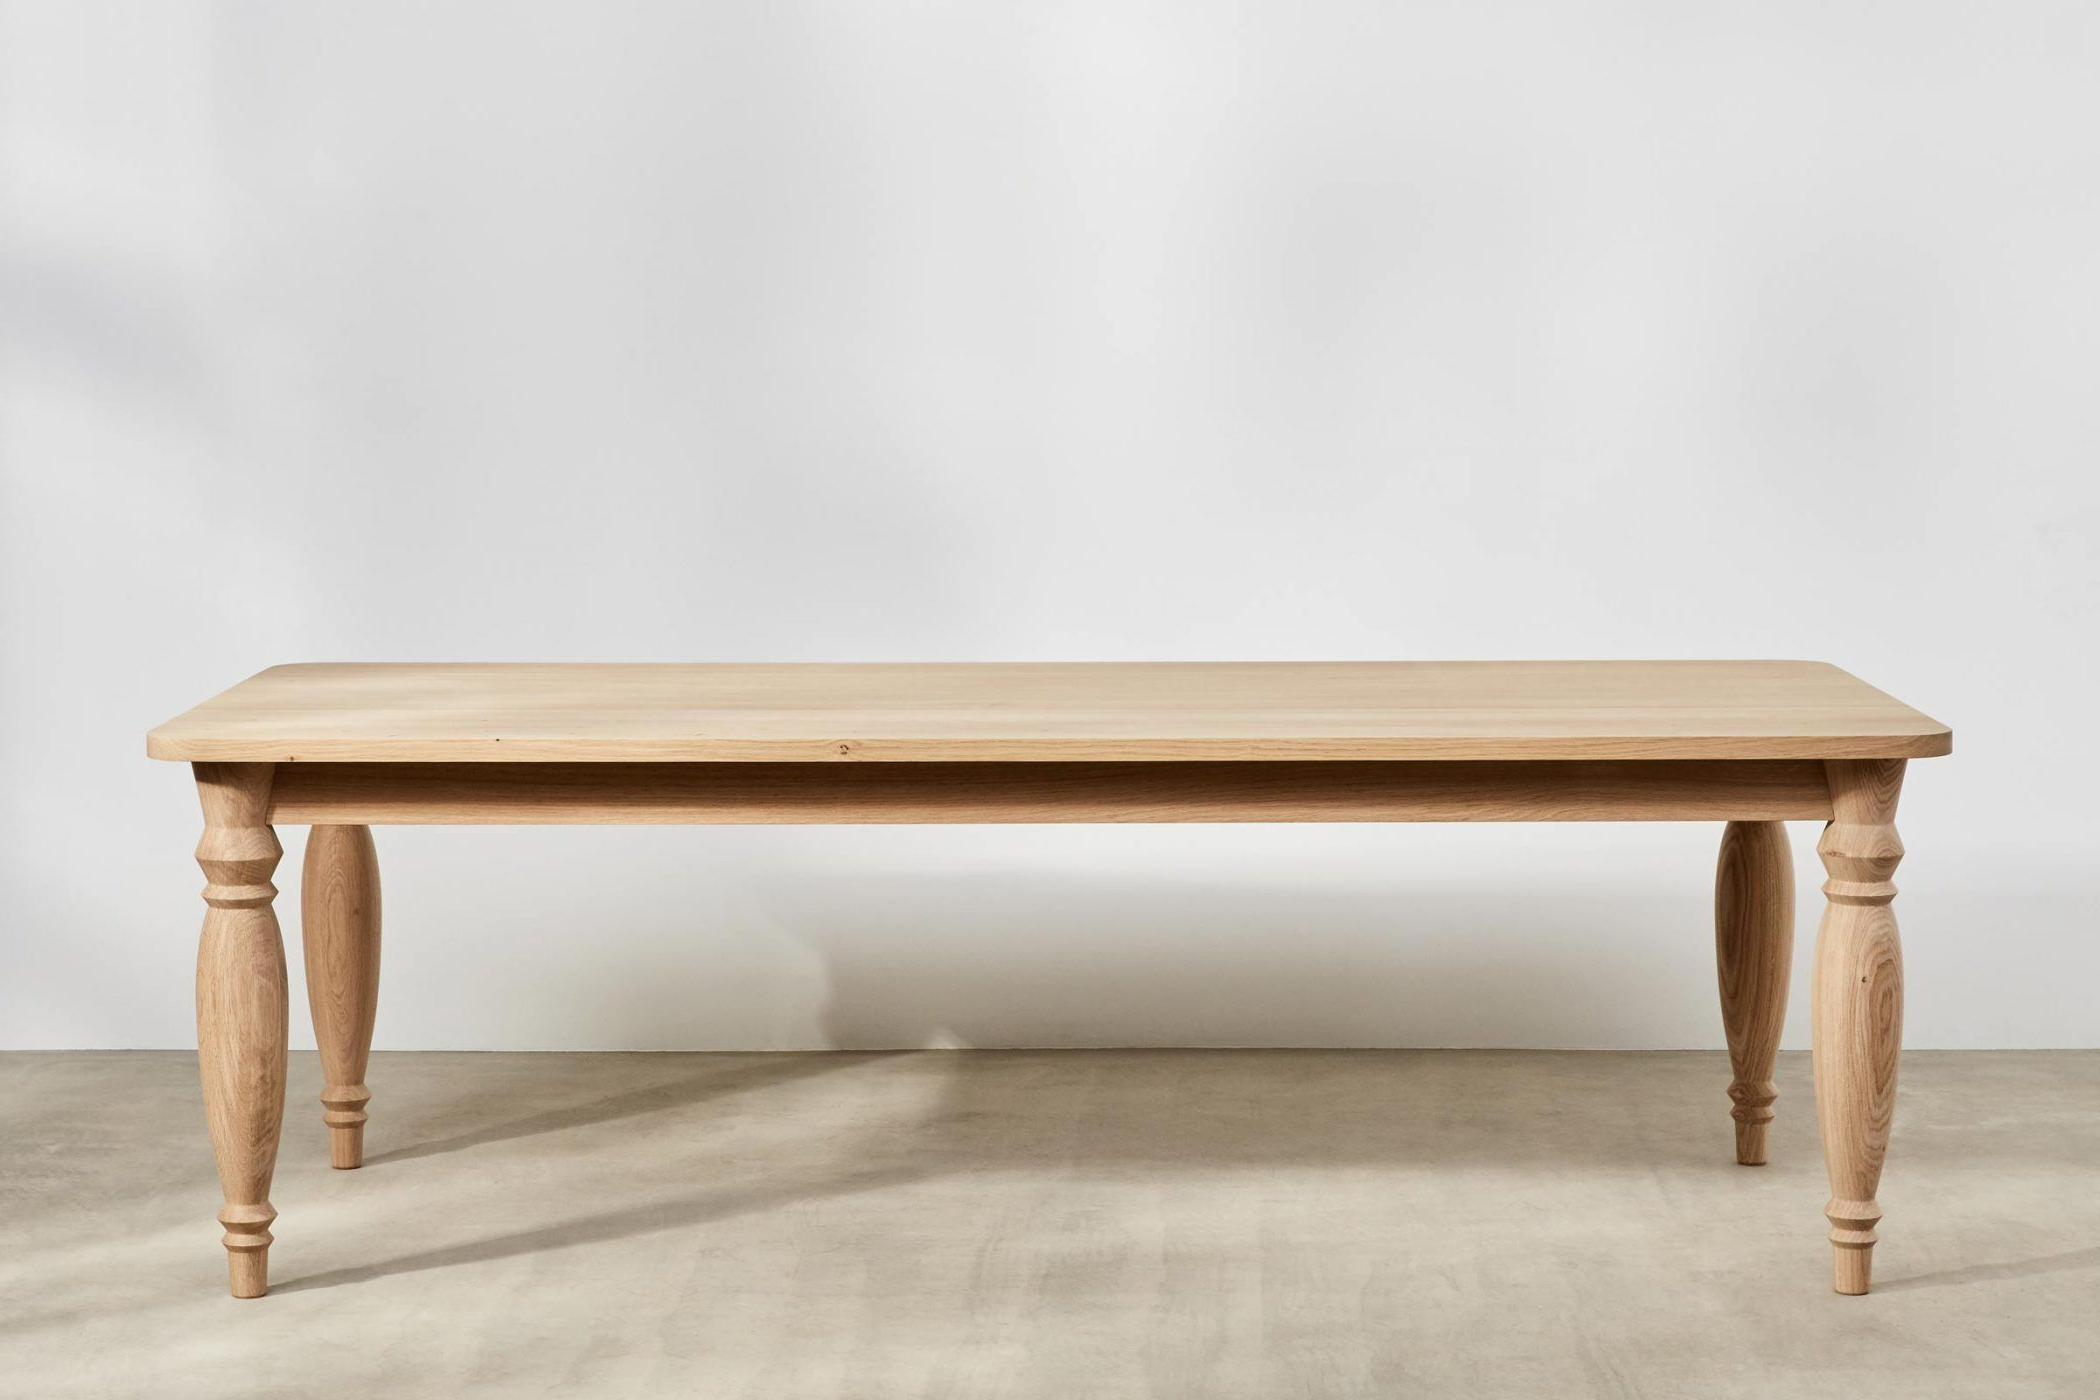 Solid Oak Farmhouse Dining Table With Hand Turned Legs Regarding Popular Fumed Oak Dining Tables (View 27 of 30)